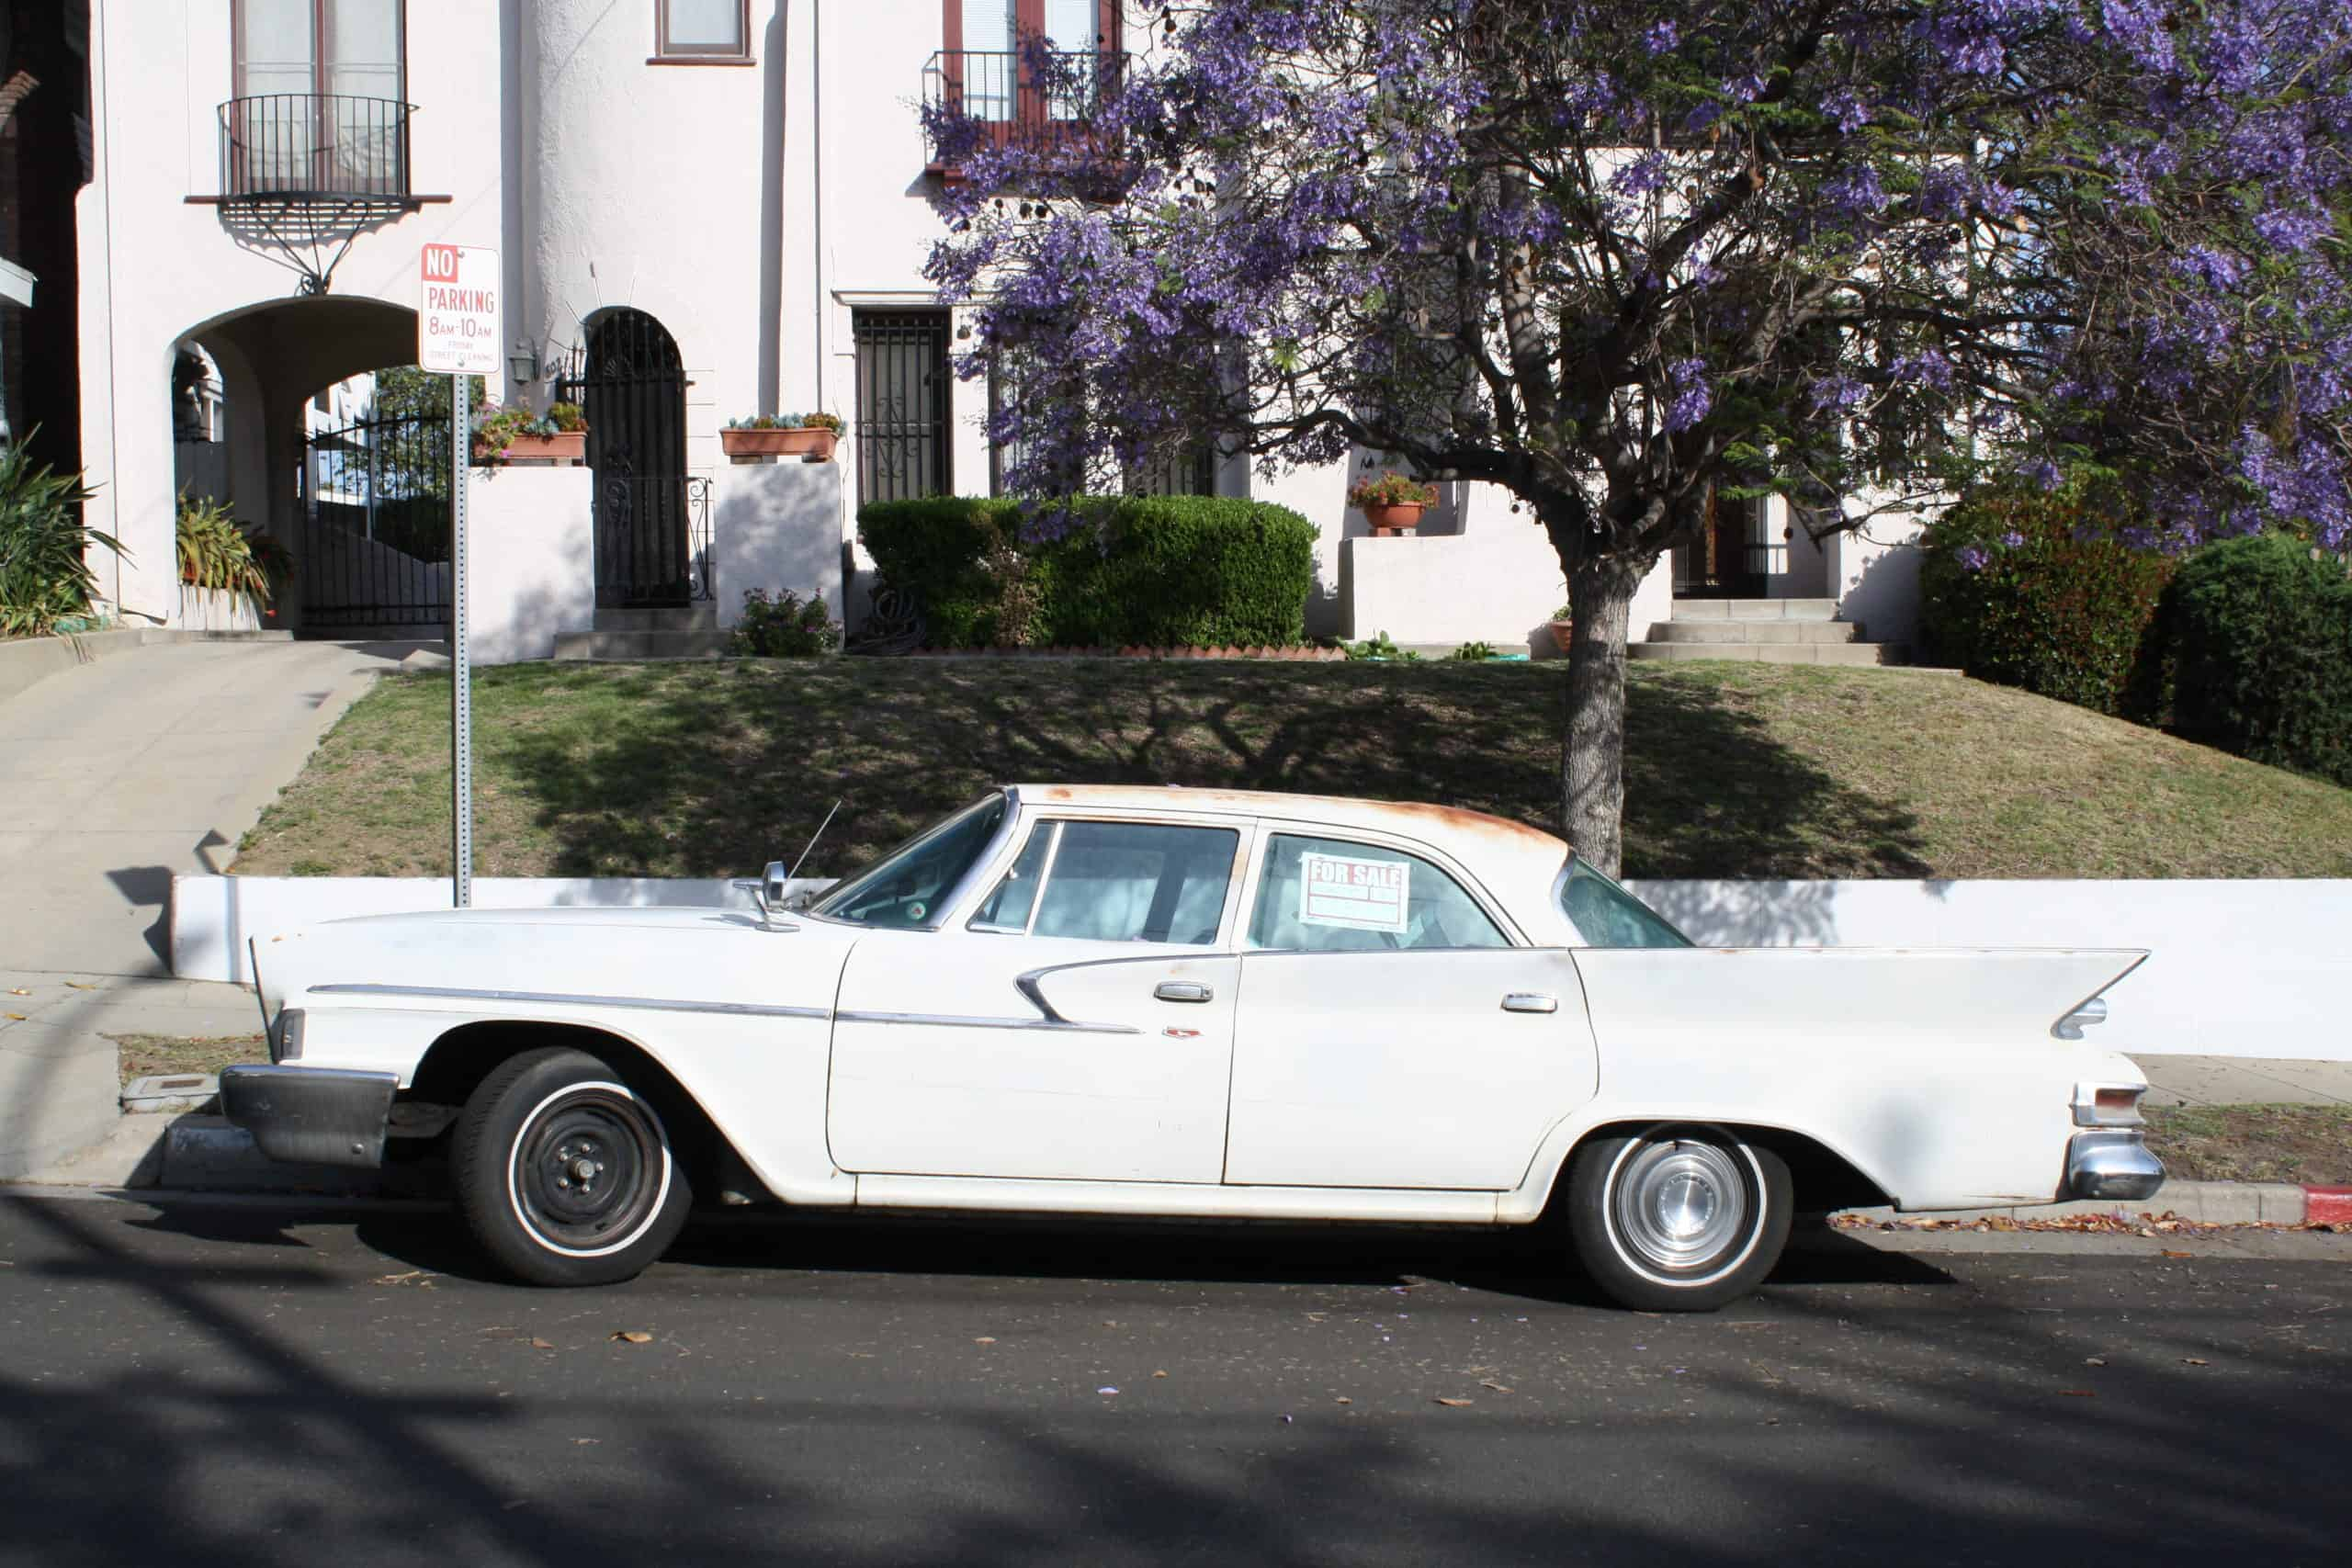 1961 Chrysler Newport 'Frenchie'